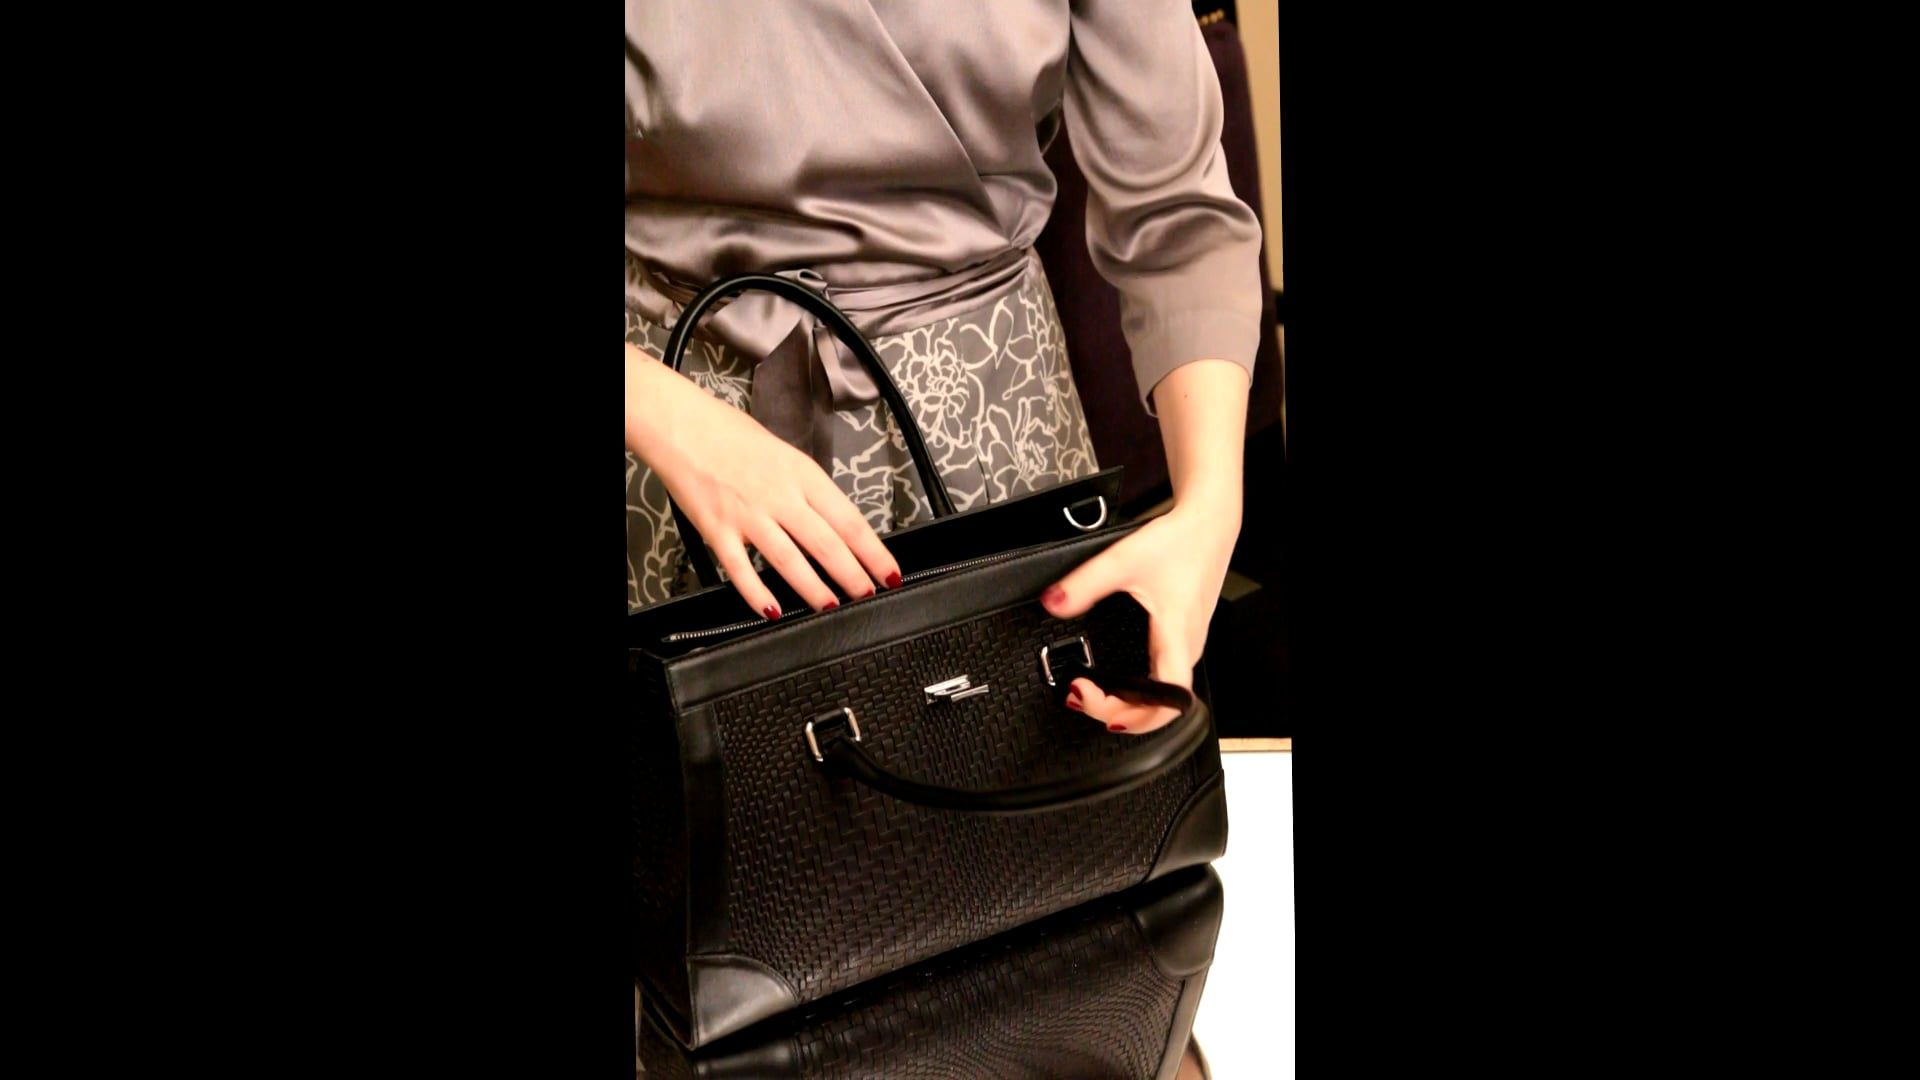 Tessere satchel in calf skin with interior lighting system by Glass Handbag